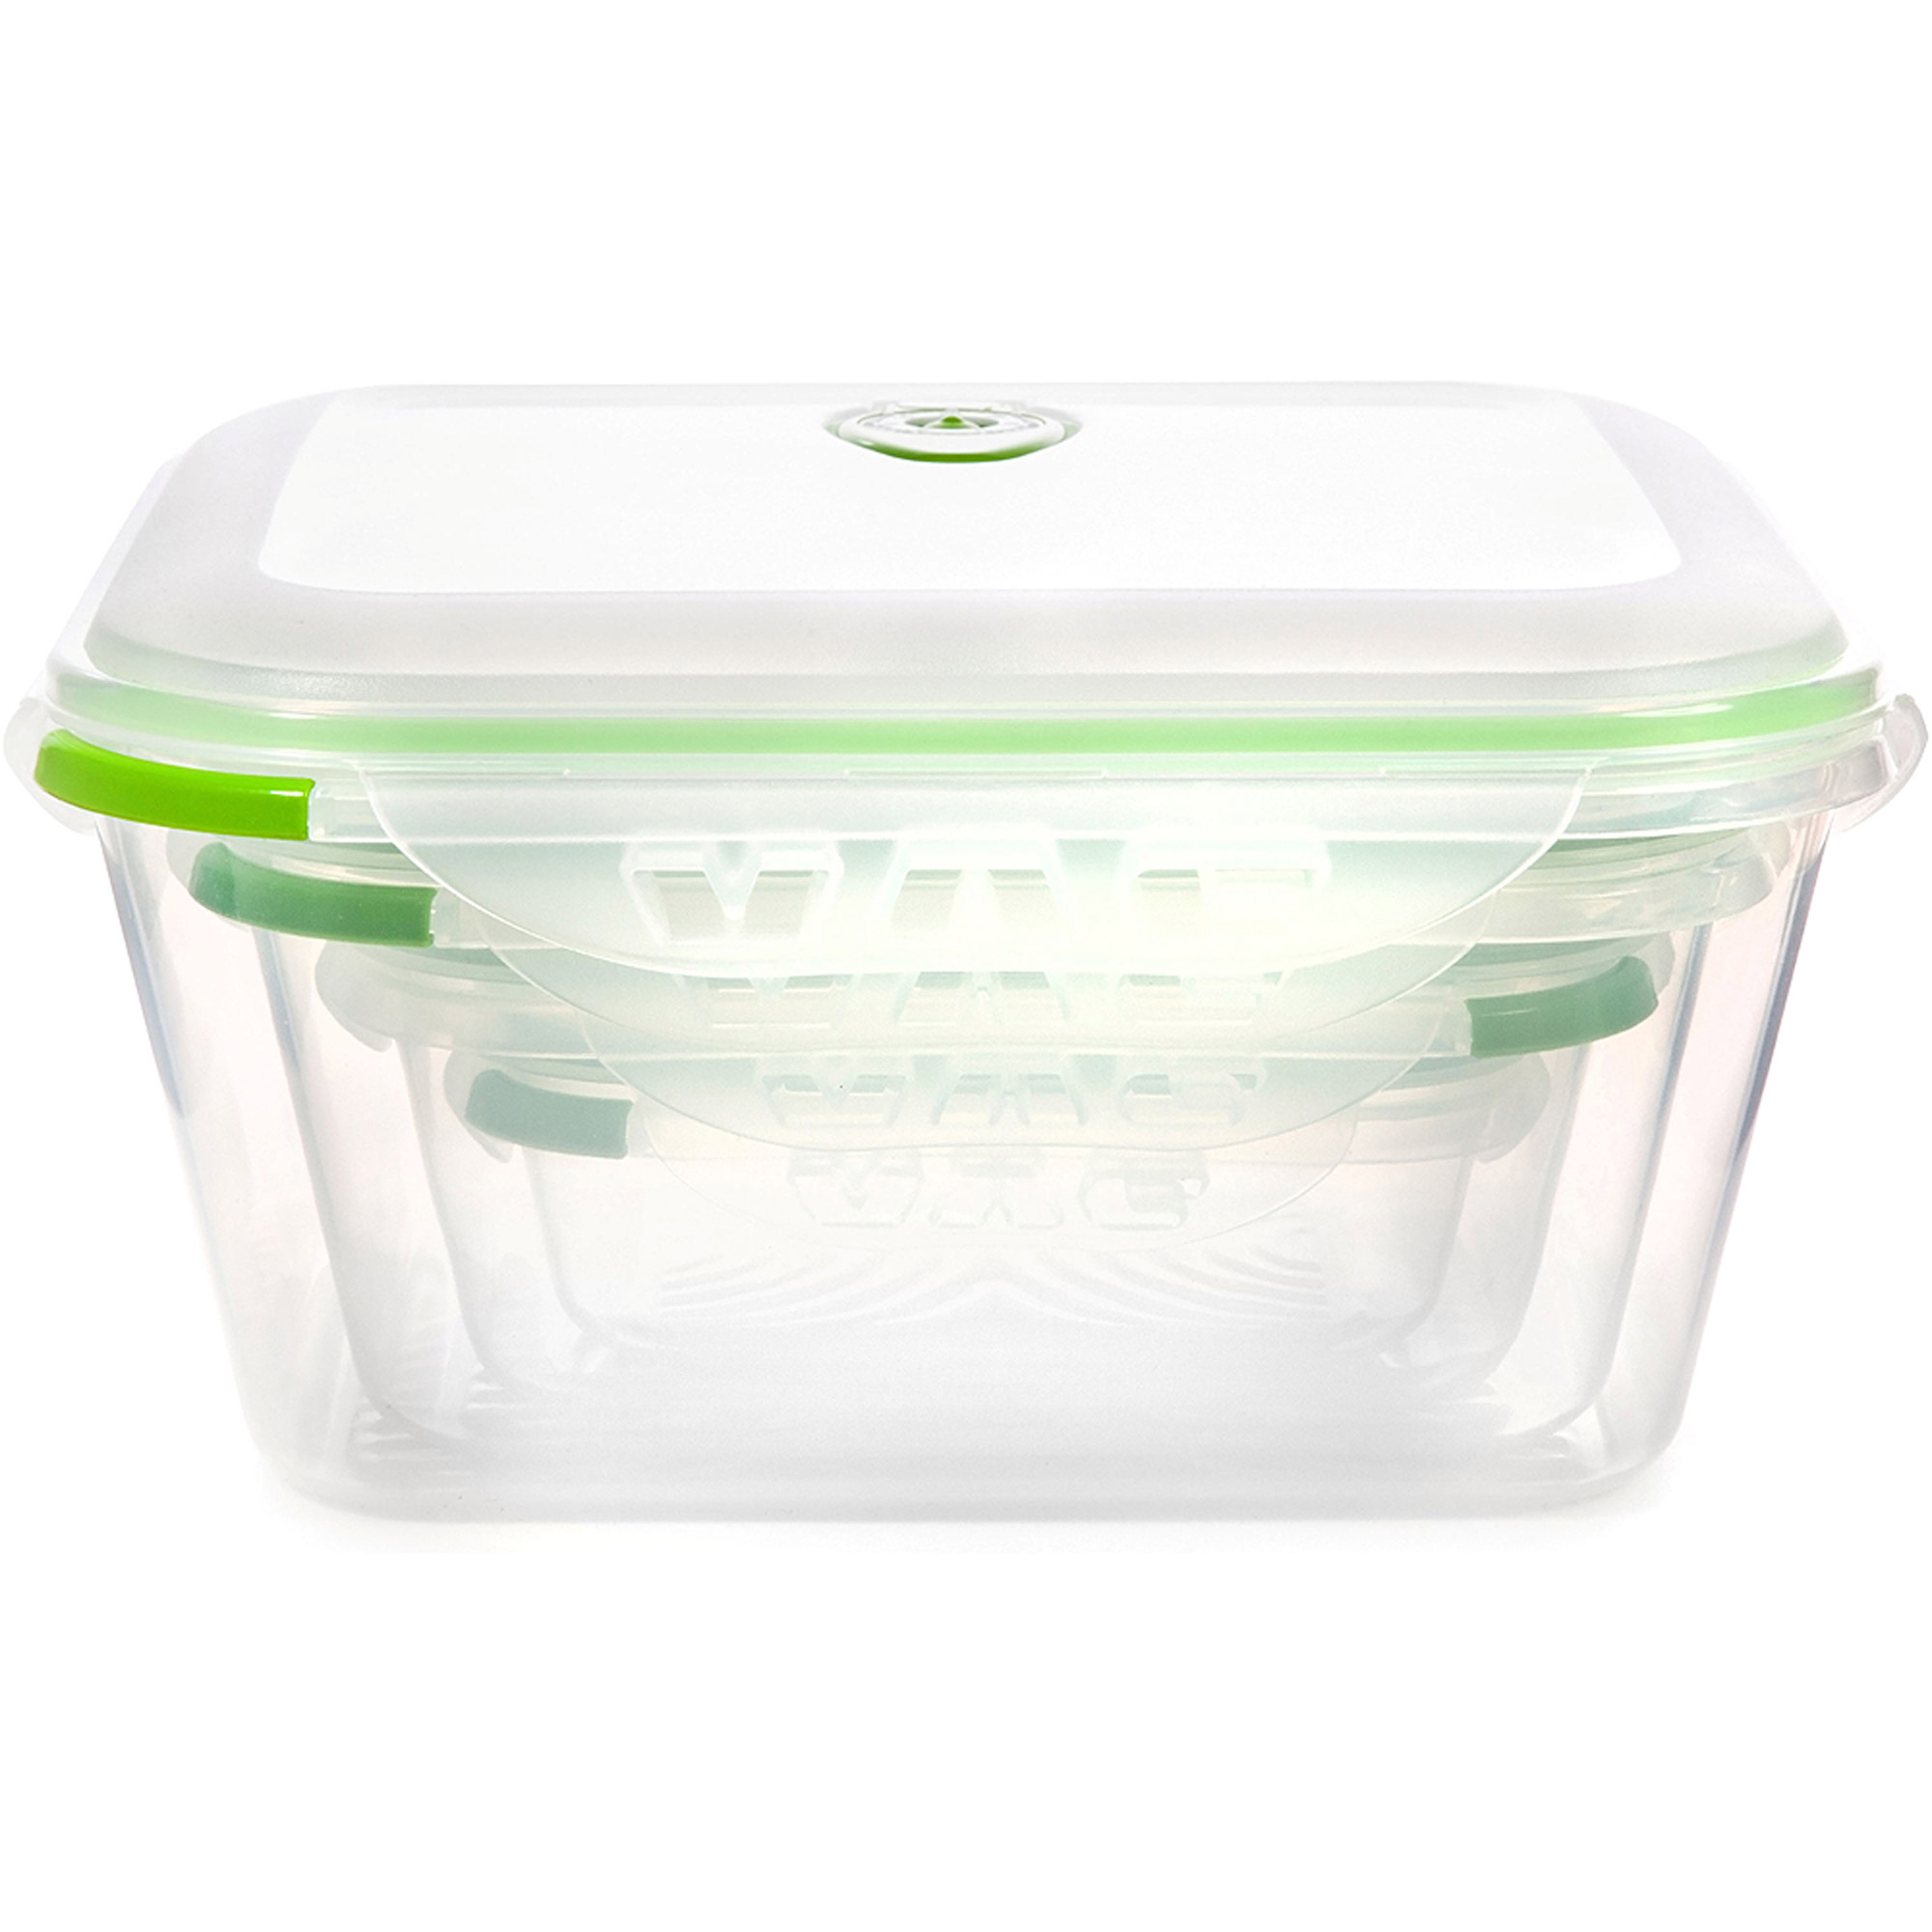 Ozeri INSTAVAC 8 Piece Green Earth Food Storage Container Nesting